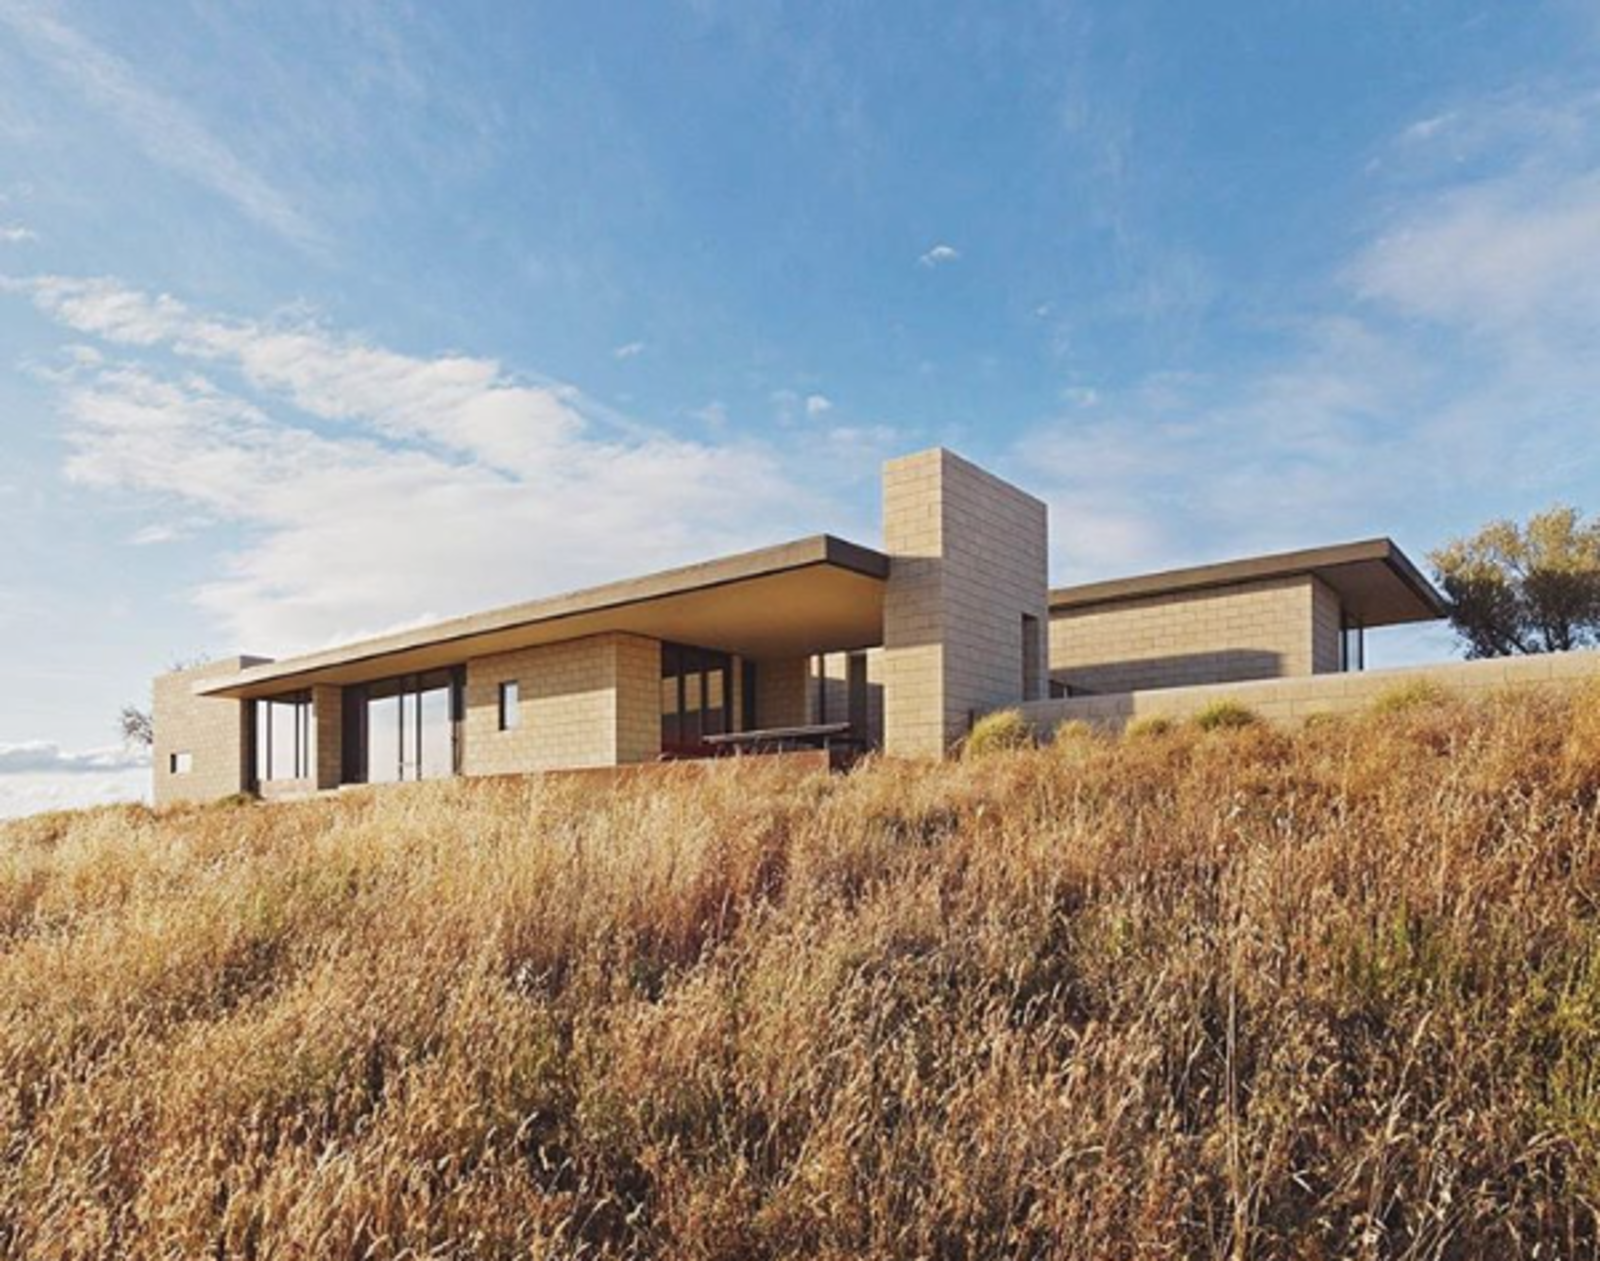 Photo 1 of 1 in Photo of the Week: California Modern Home on an 80-Acre Farm